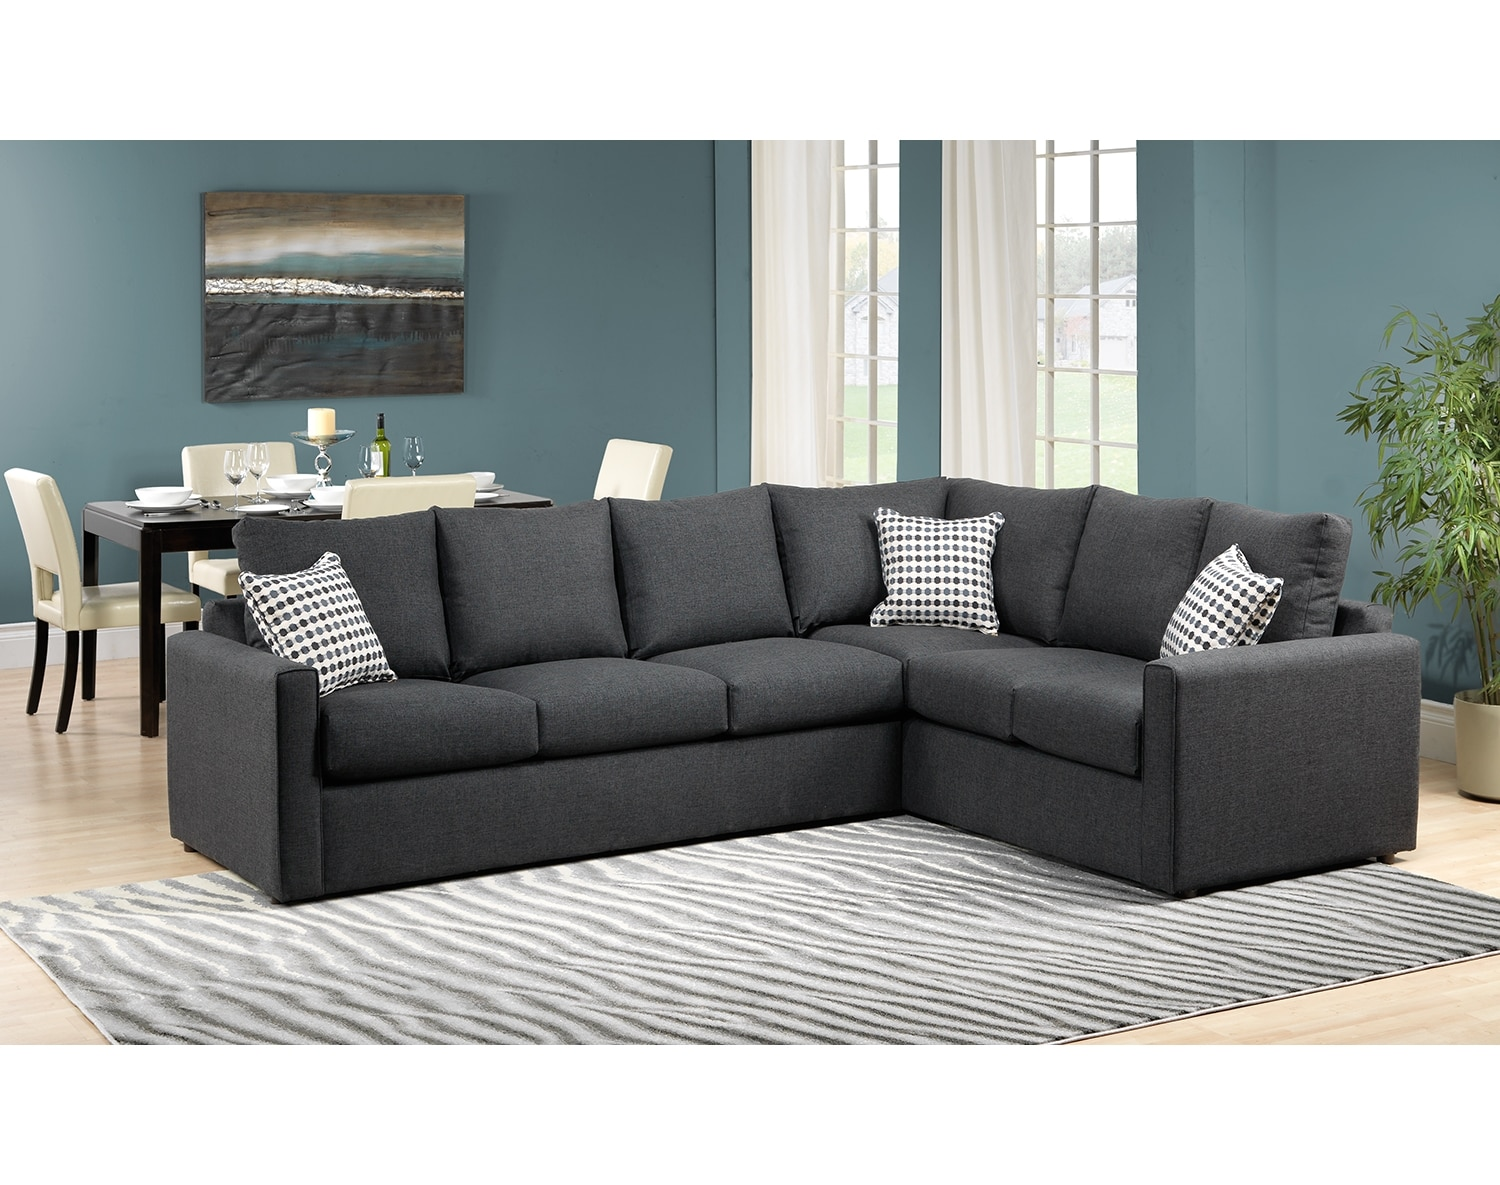 Athina 2 piece sectional with left facing queen sofa bed for Sectional furniture